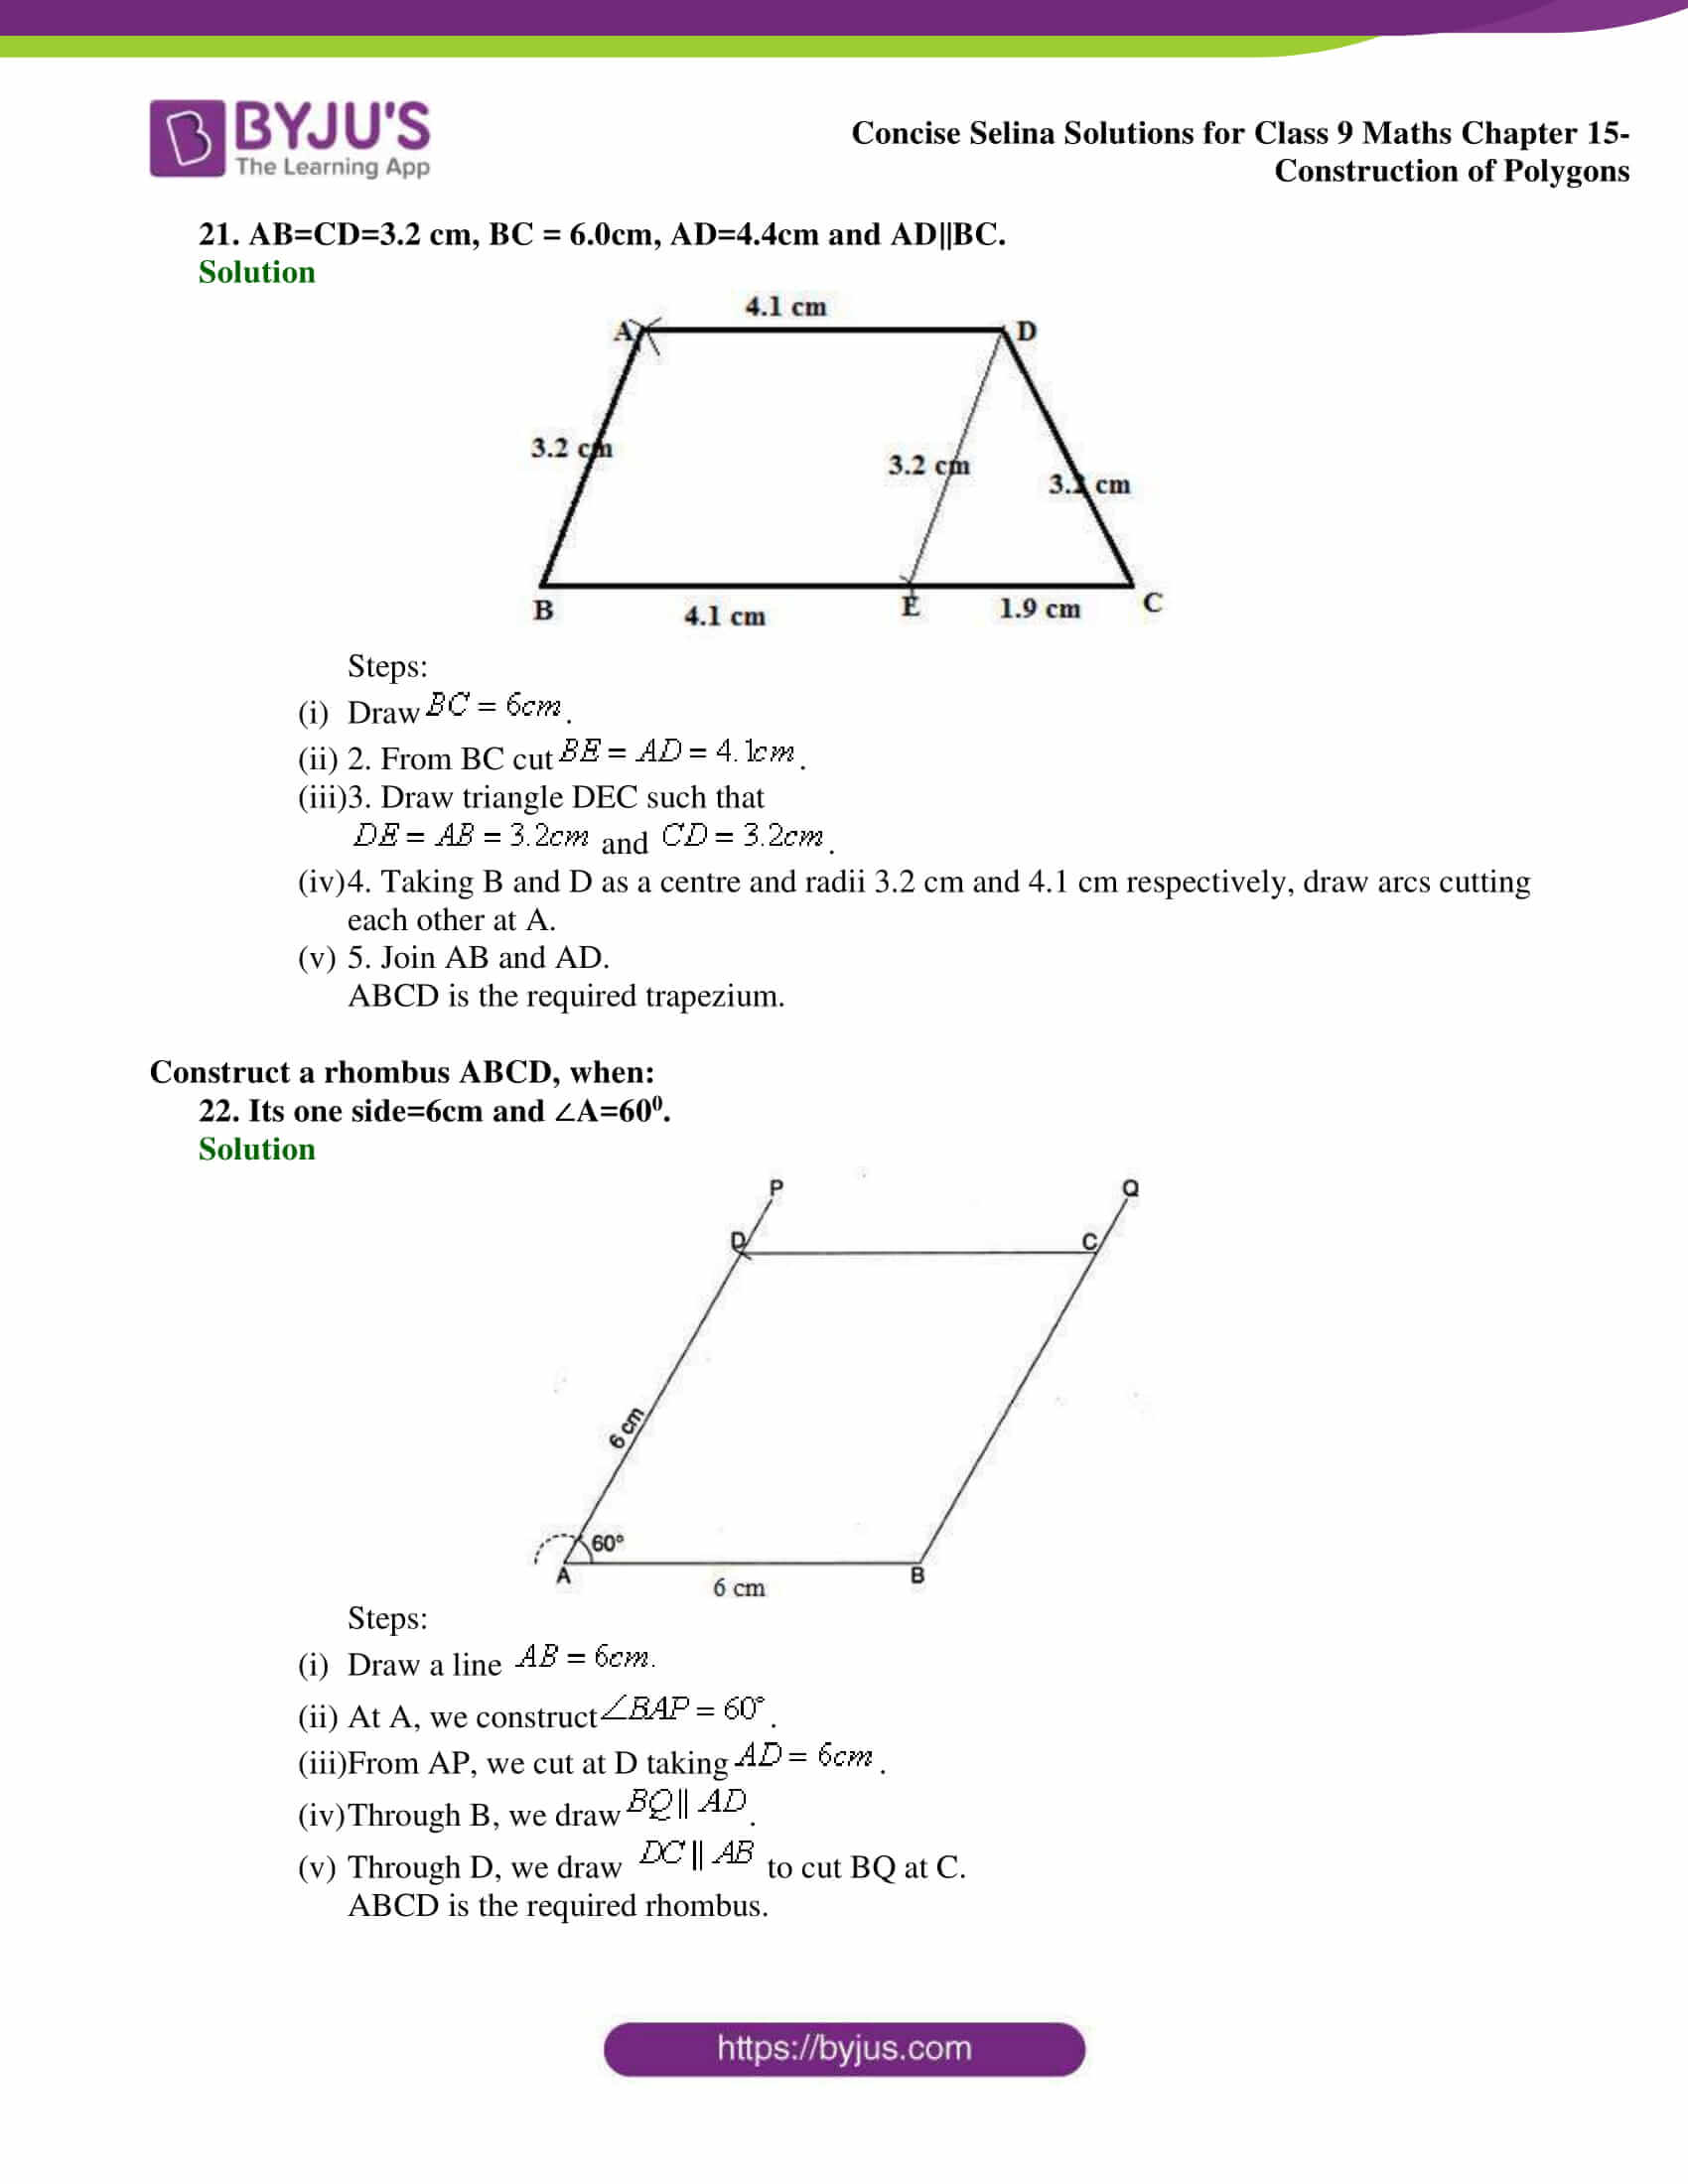 selina Solutions for Class 9 Maths Chapter 15 part 11